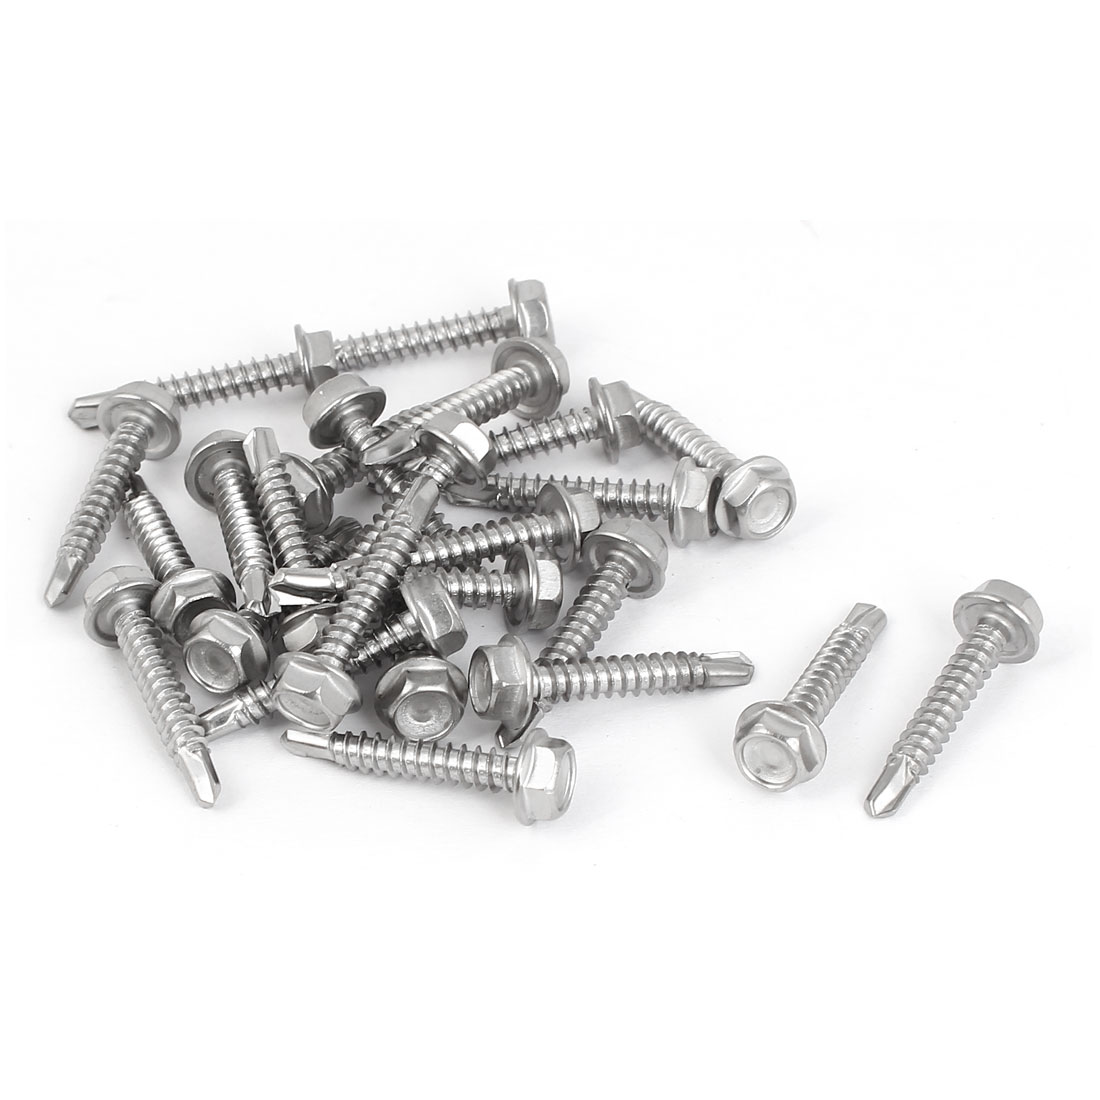 M4.2 x 25mm Male Thread Hex Washer Head Self Drilling Screws Bolts 25 Pcs